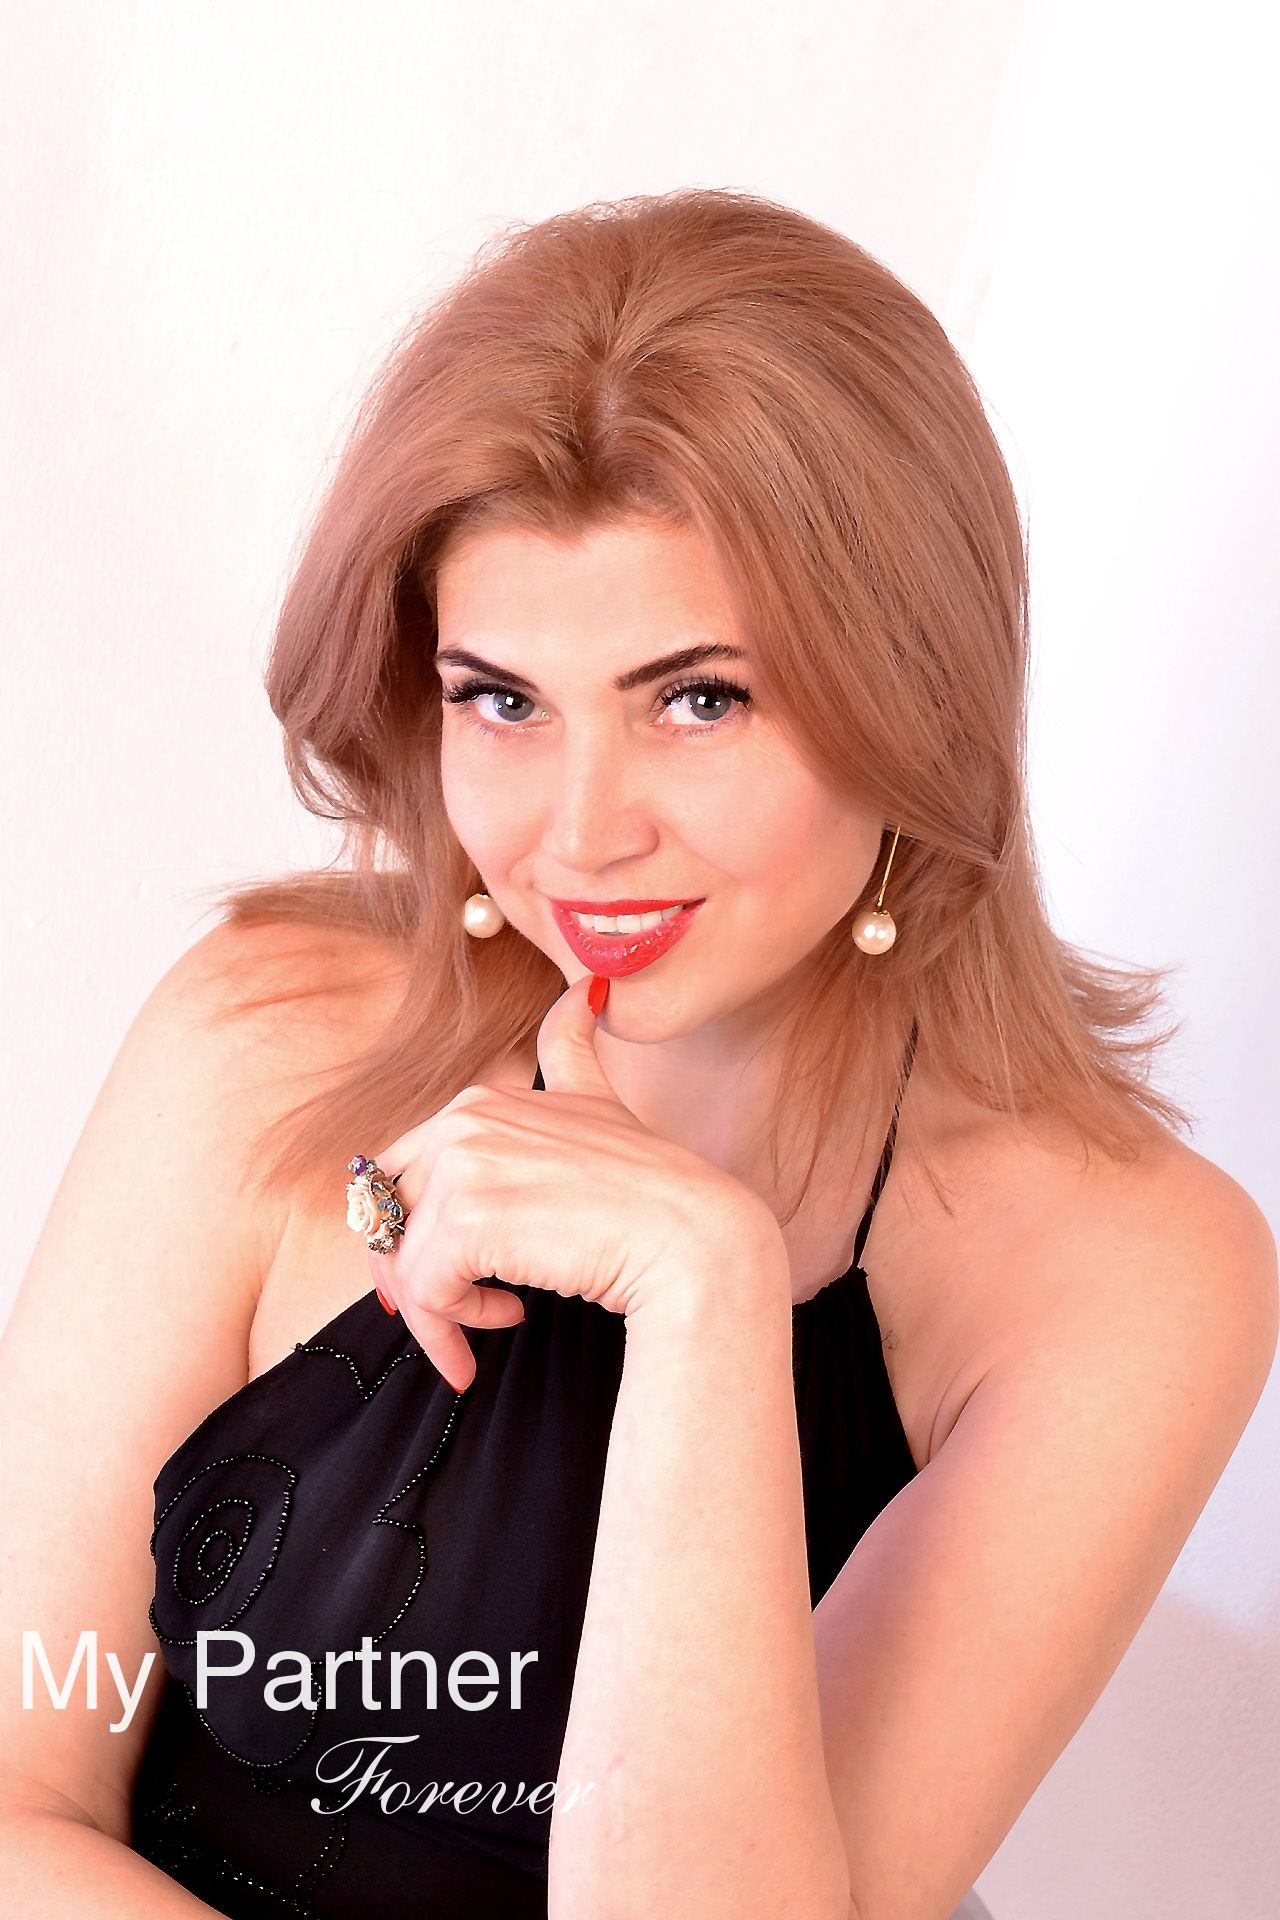 Dating Service to Meet Stunning Ukrainian Woman Alina from Kharkov, Ukraine